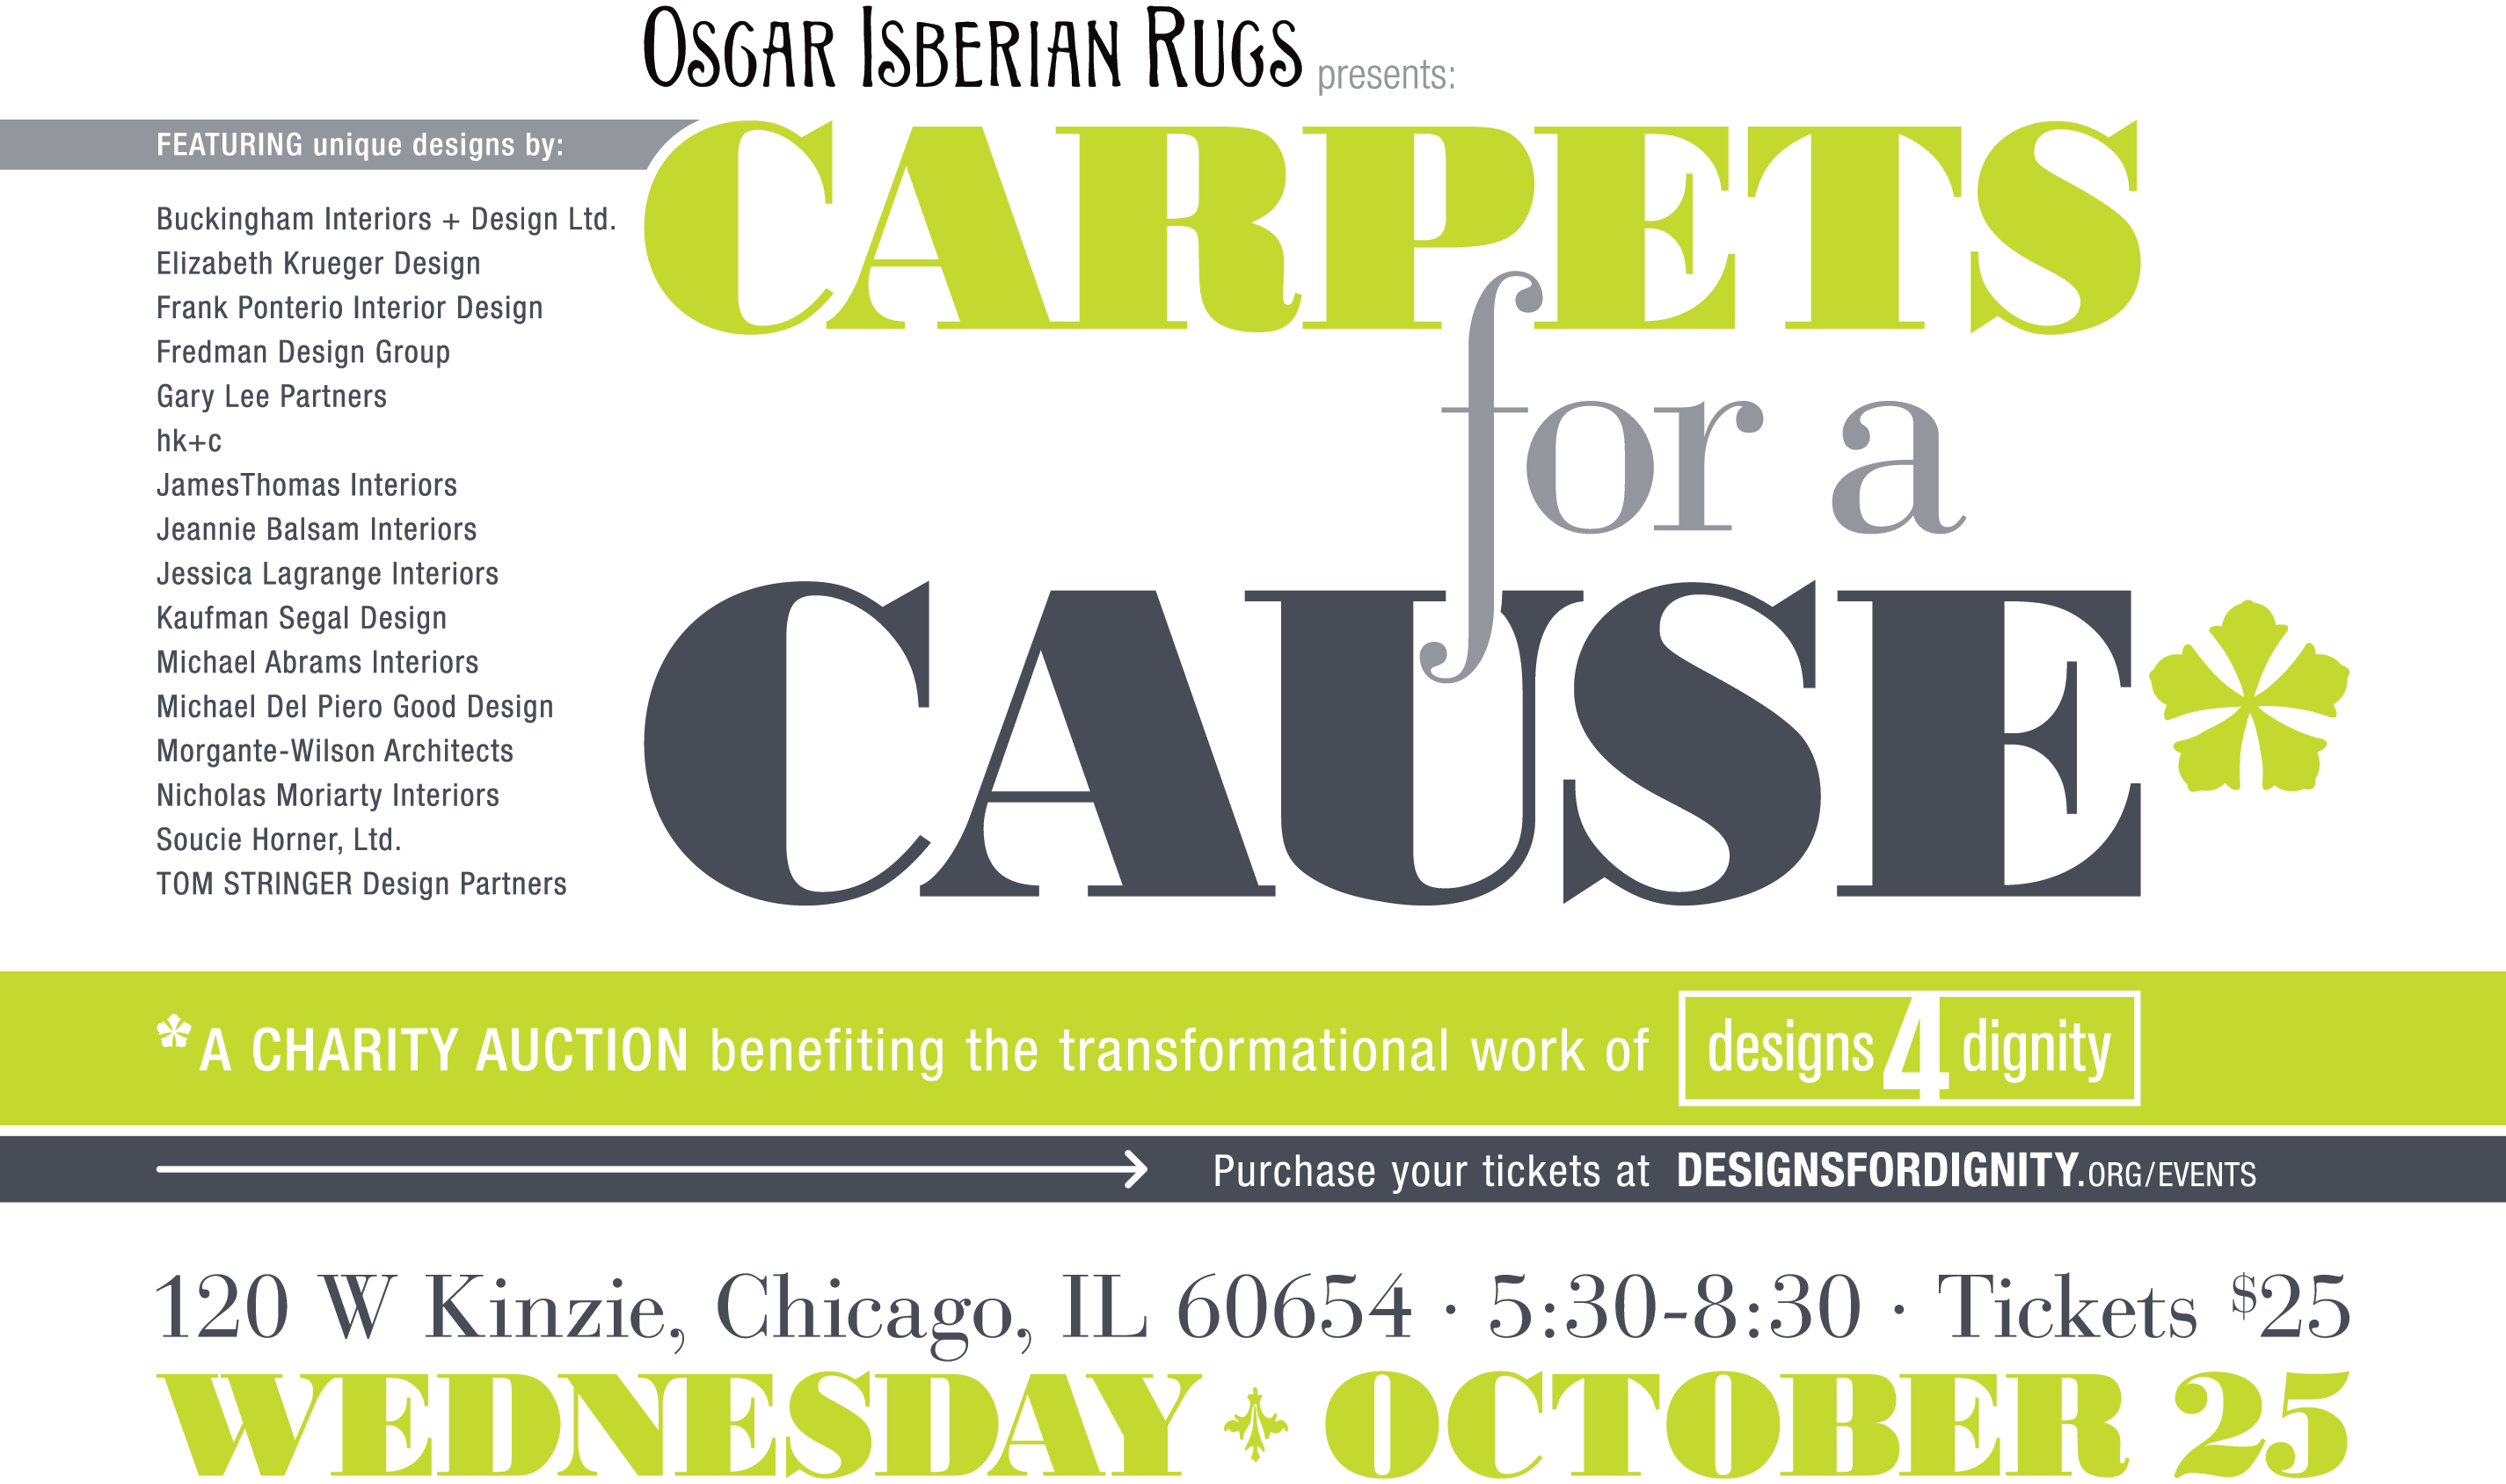 Carpets For A Cause Tickets Wed Oct 25 2017 At 530 PM